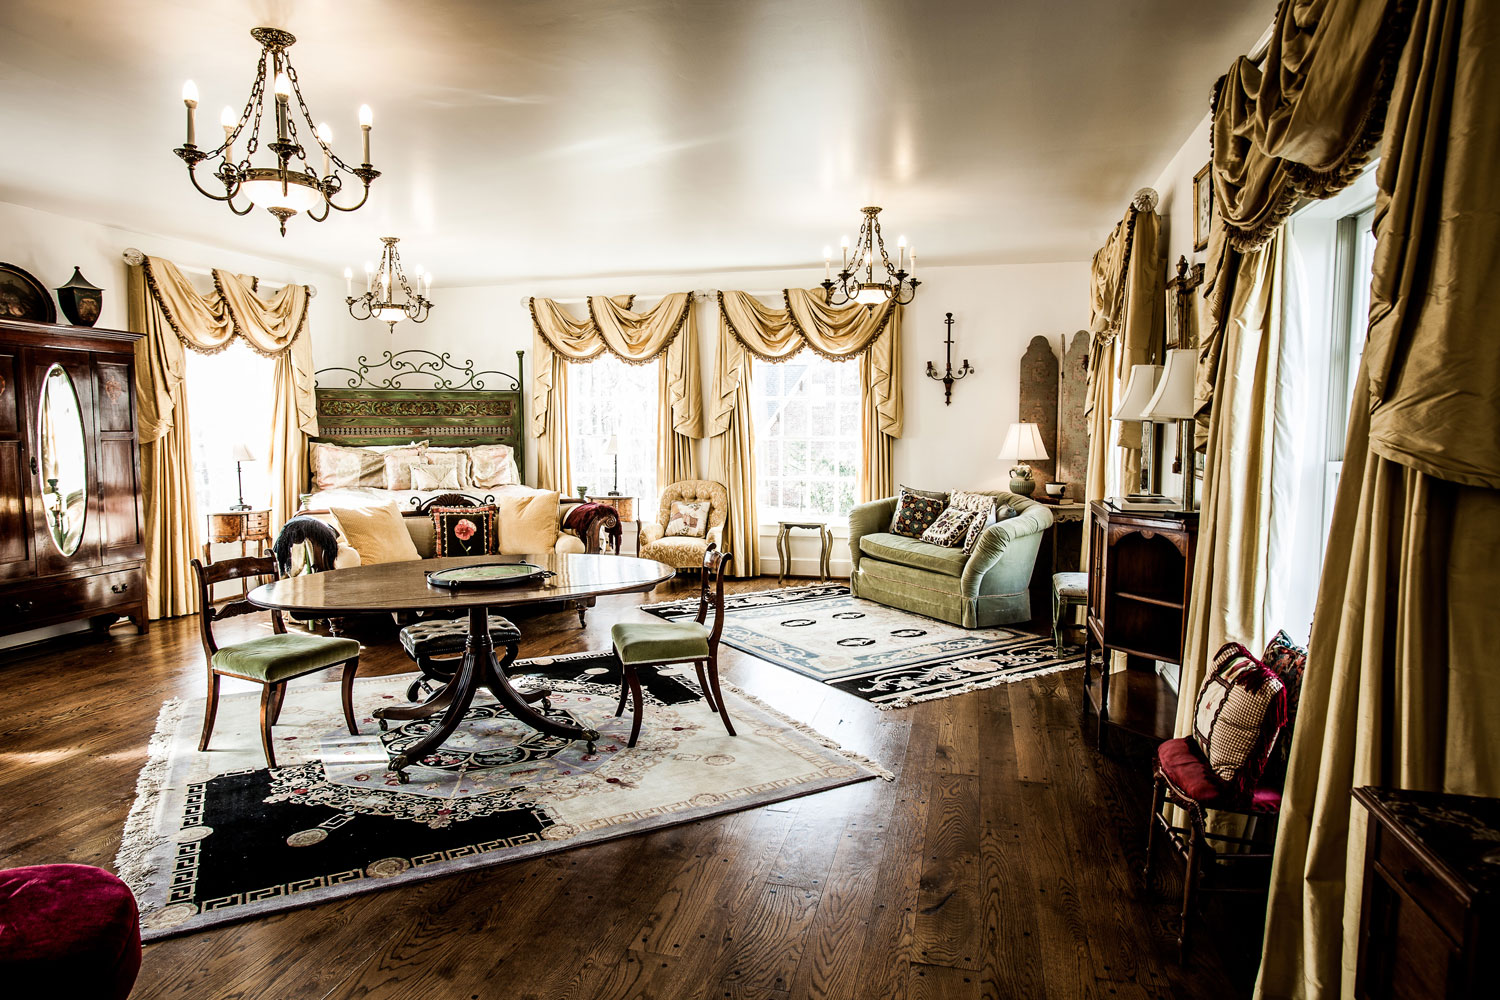 A spacious and immaculate bedroom with curtain draped windows facing every direction. A dining table and accompanying chairs atop an antique rug sit in front of the Queen sized bed. Three hanging chandeliers, plush chairs, and old English details adorn every corner of the room.